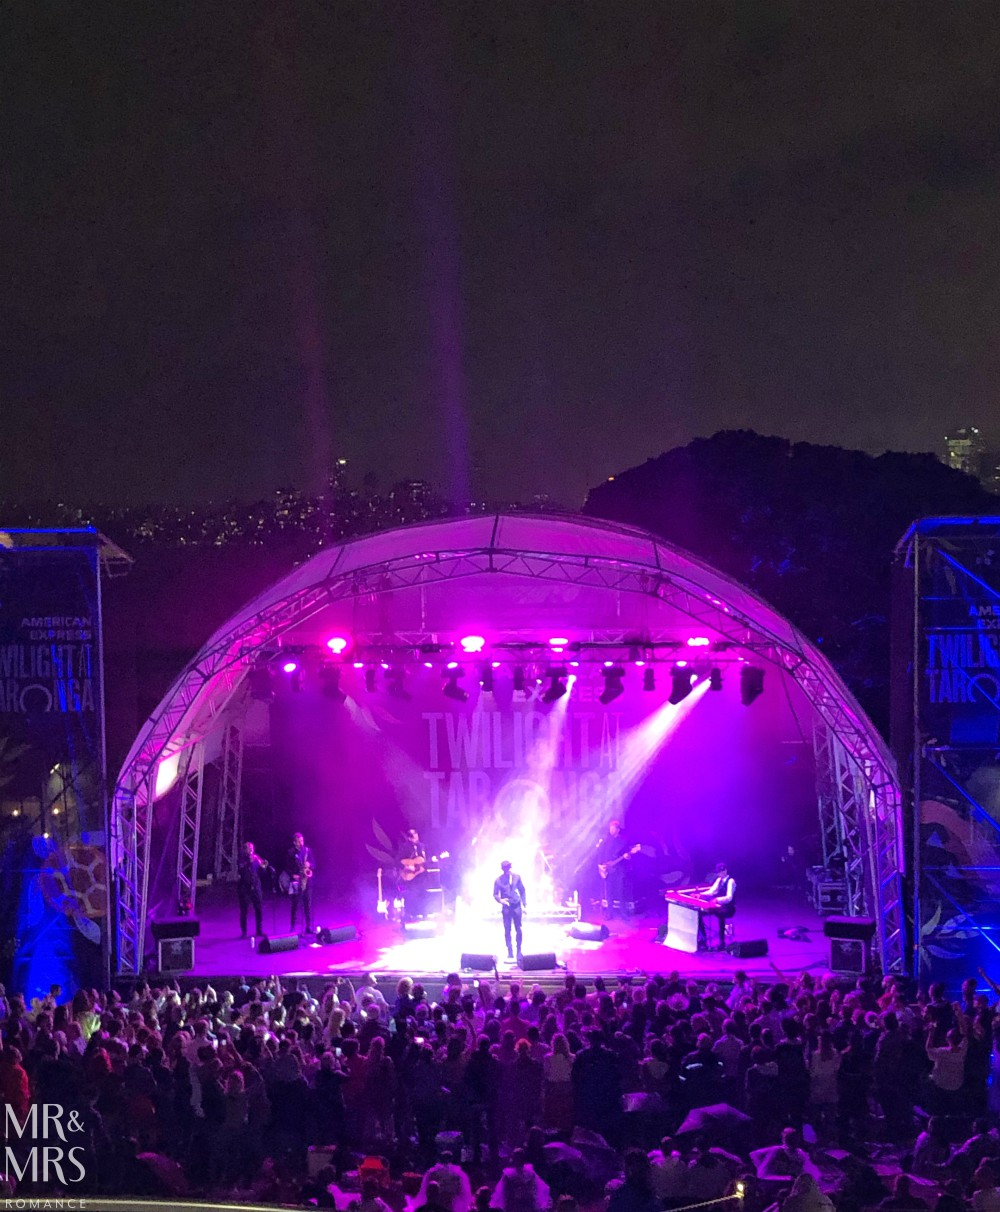 Weekly Edition - Twilight at Taronga - Aloe Blacc